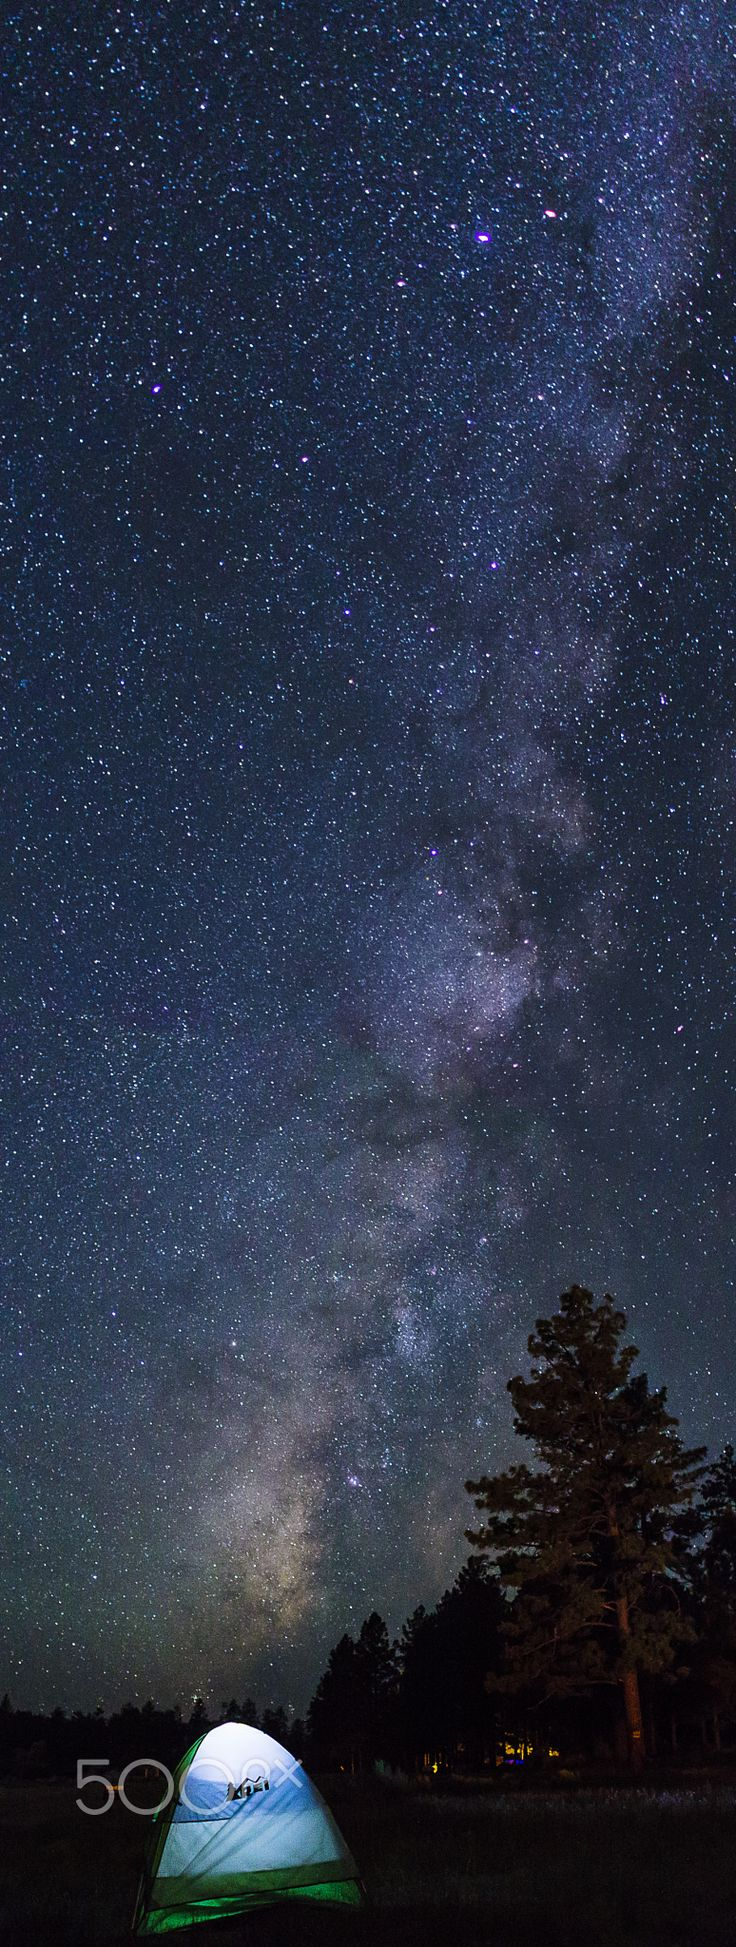 Sleeping under Milky Way. - See to the Sky before go to sleep.